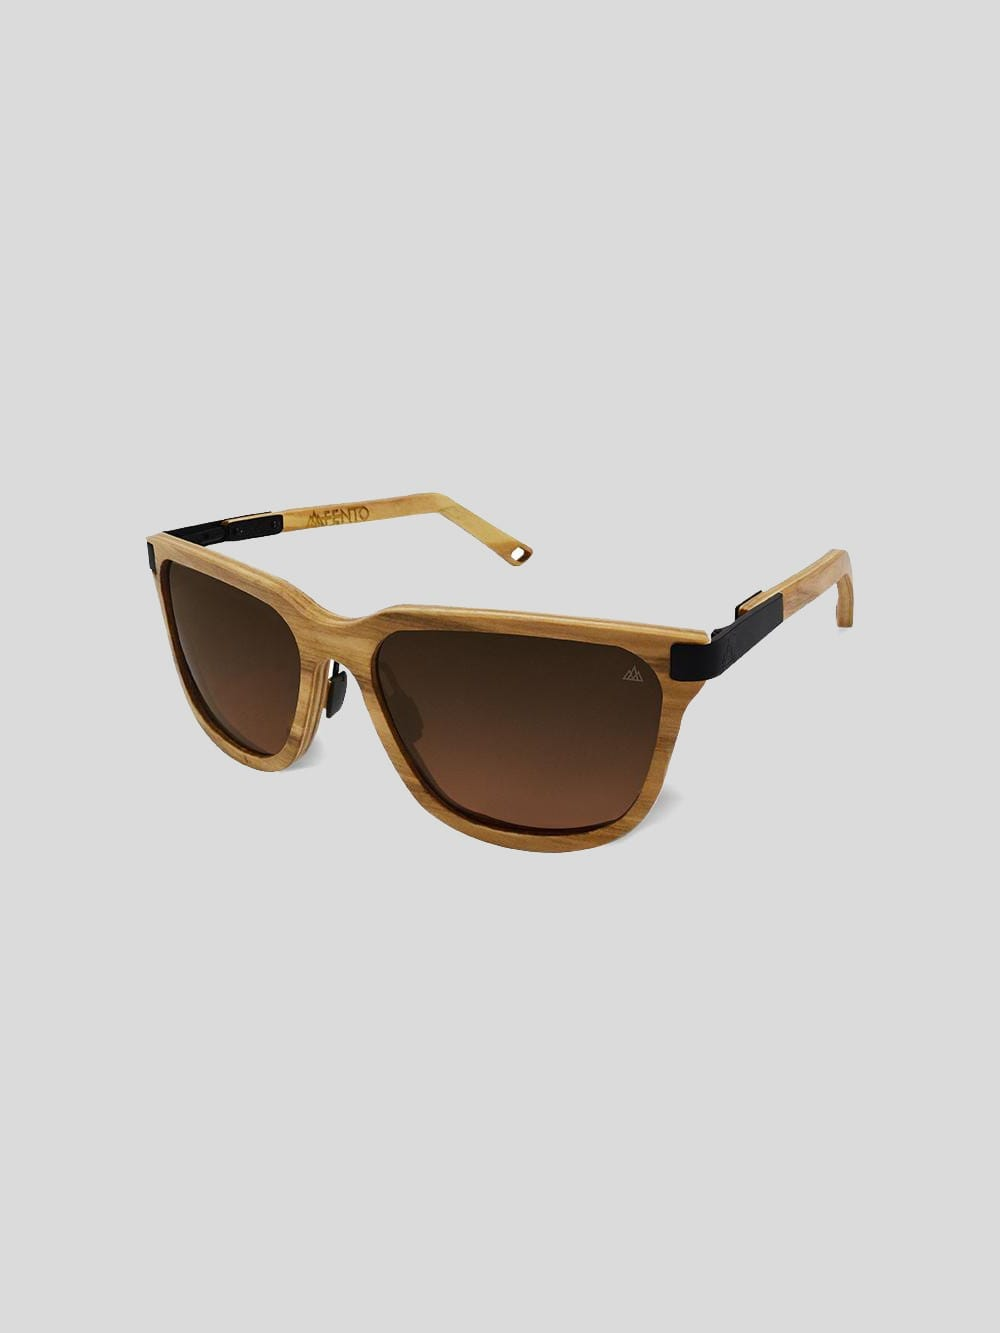 Sustainable sun glasses acetate and wood-Specta